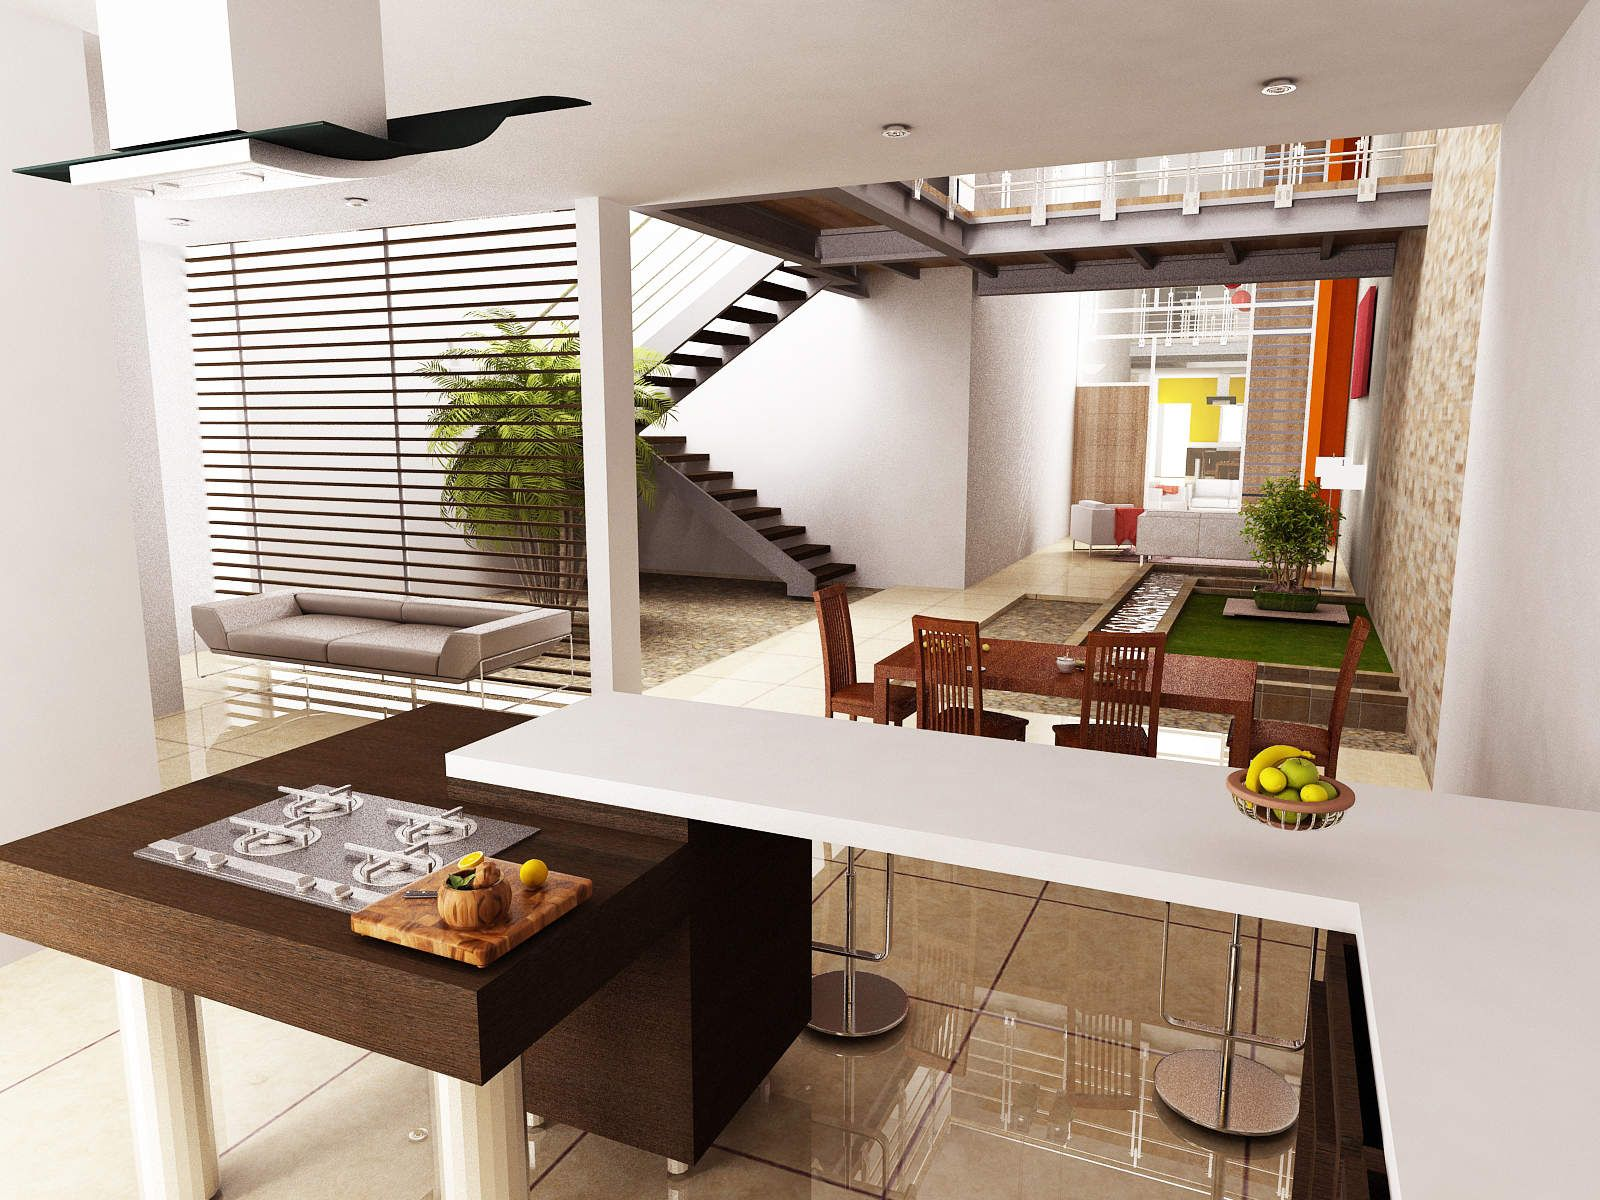 Kitchen Dining Living, Kitchens, Dining Rooms, Models, Searching,  Architecture